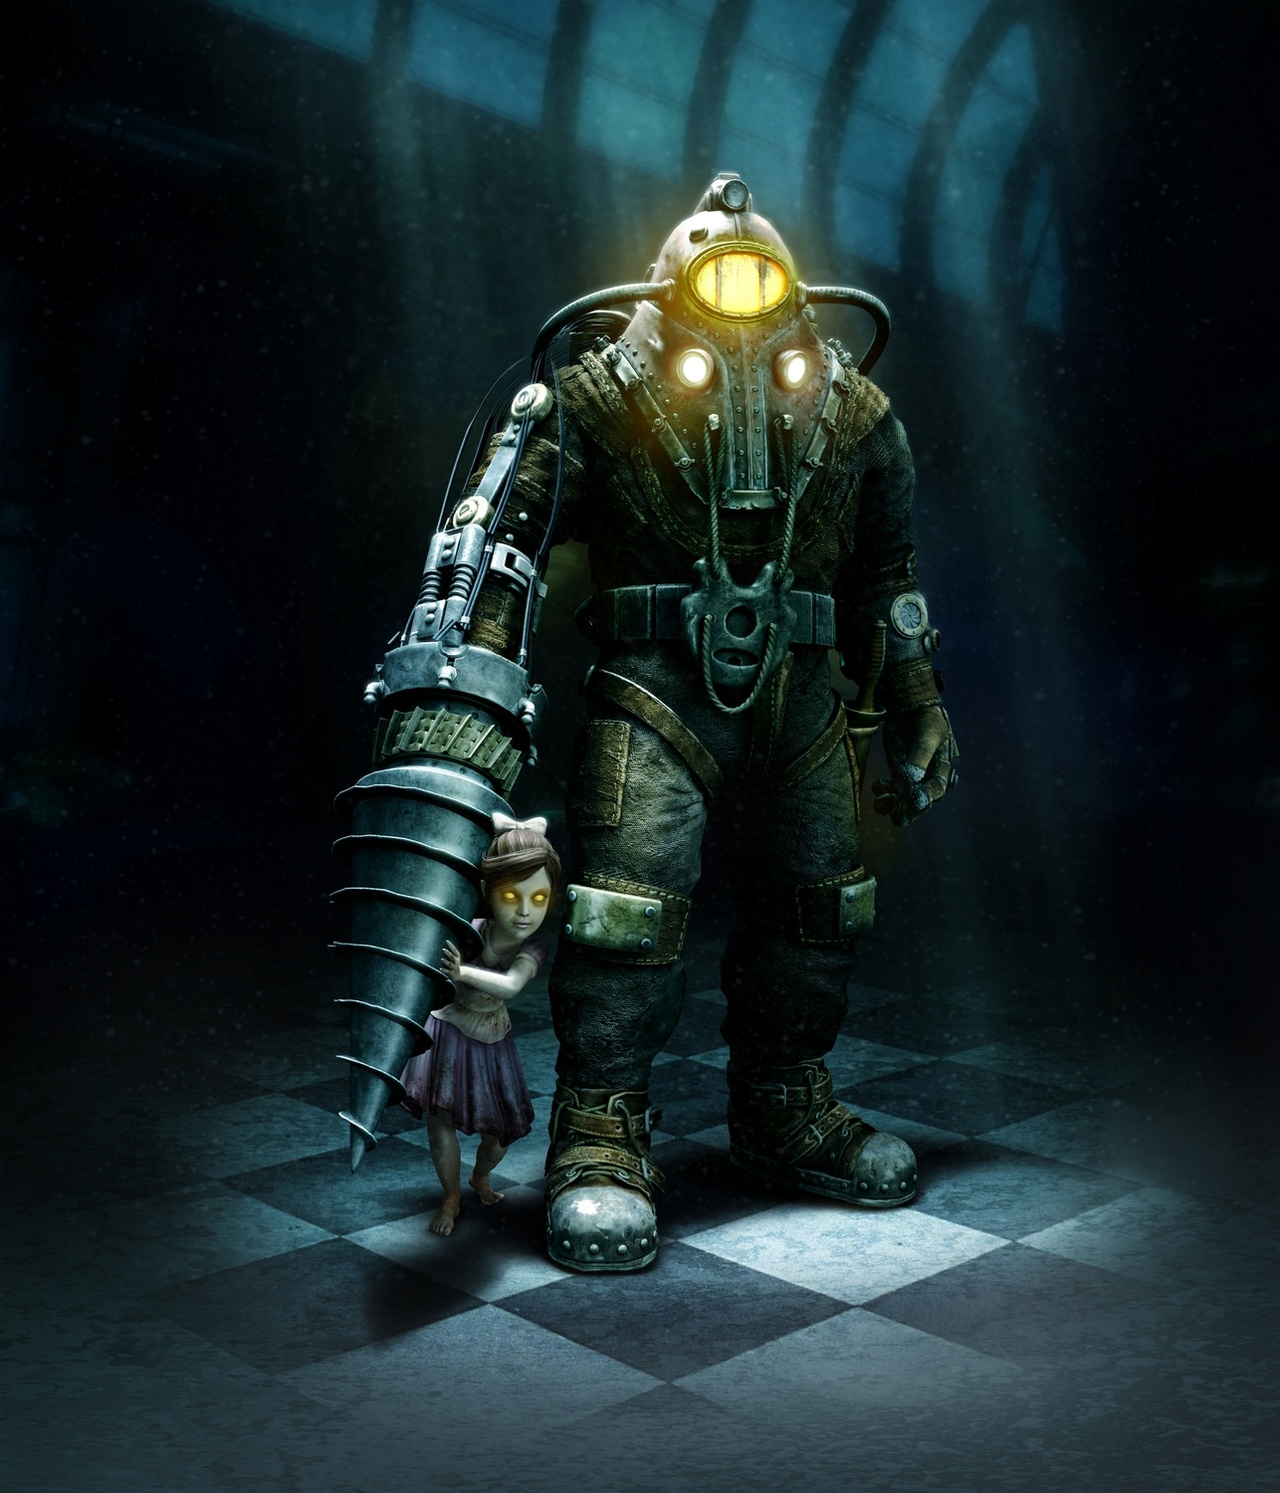 tZHgQ06 Subject-delta-bioshock-2-artwork